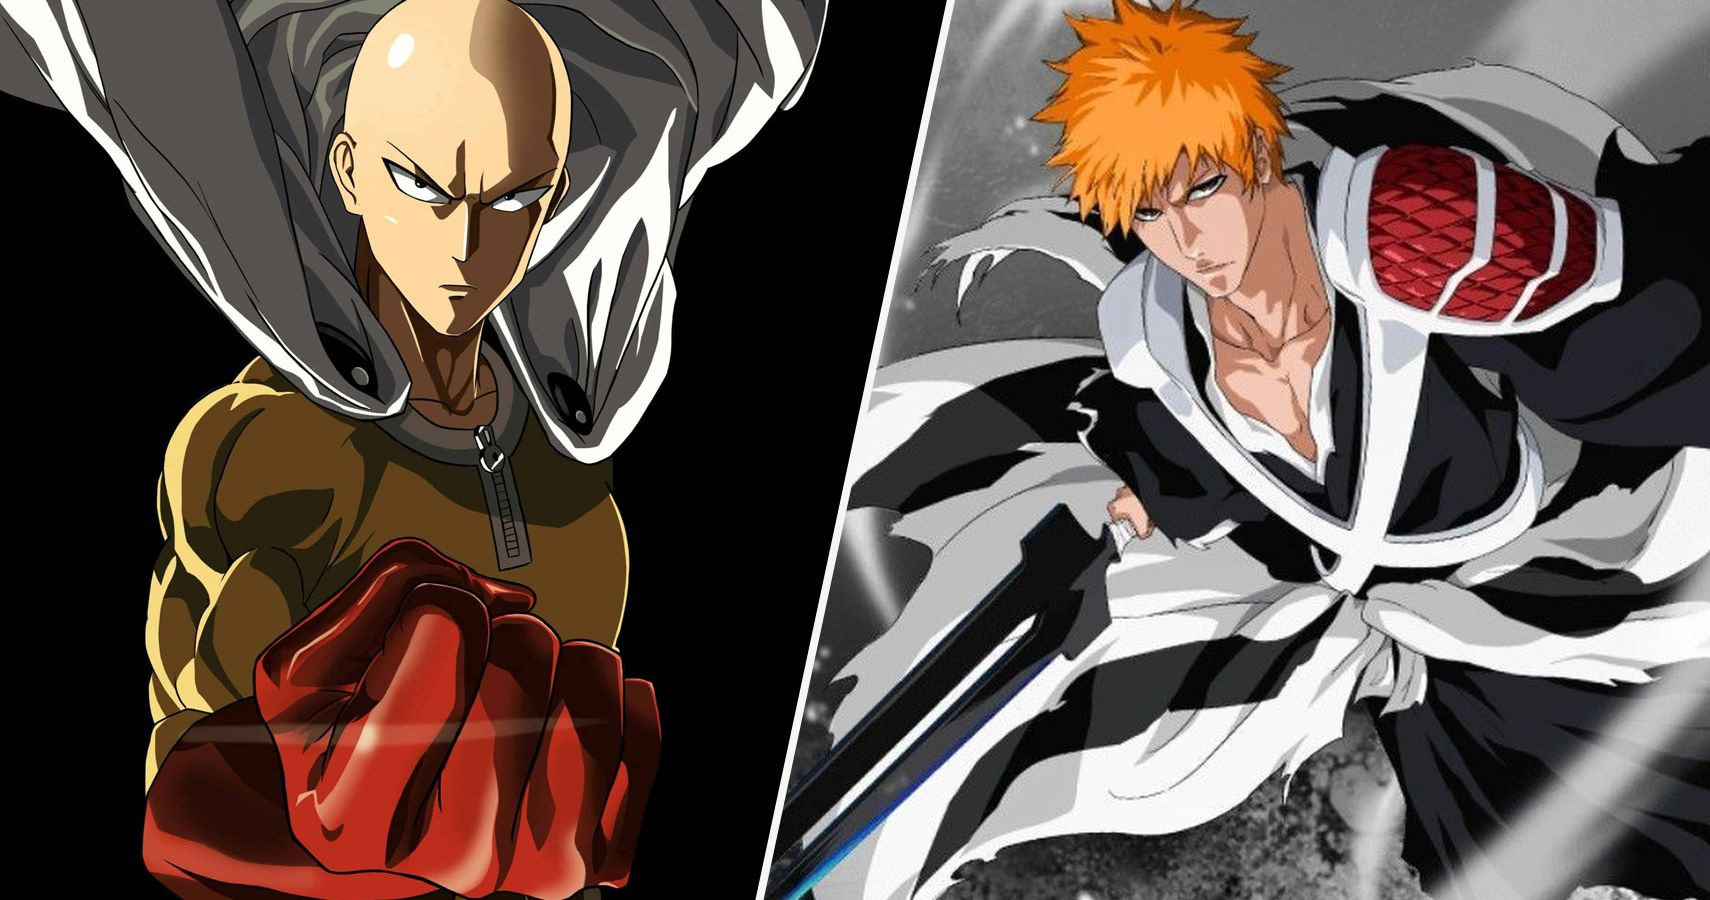 10 Anime Characters Who Are More Powerful Than Bleach's Ichigo